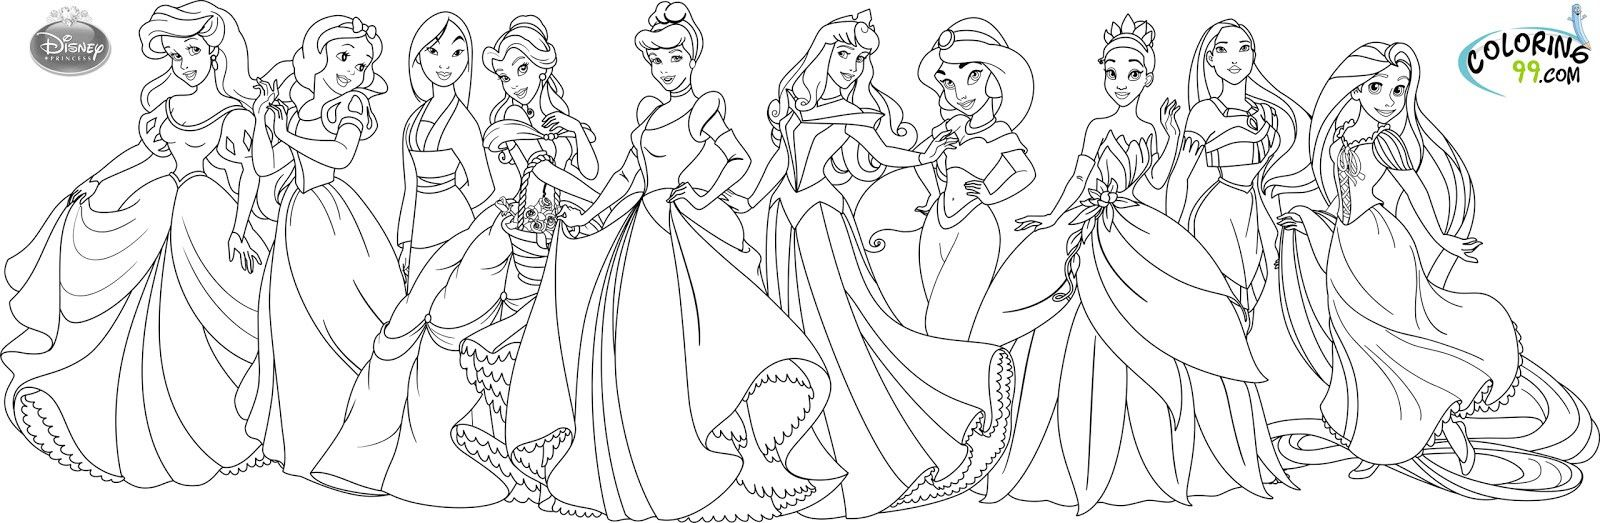 Disney Princess Hard Coloring Pages From The Thousands Of Pictures Online In Relation To Disney Cores Disney Princesas Disney Desenhos Para Colorir Princesas